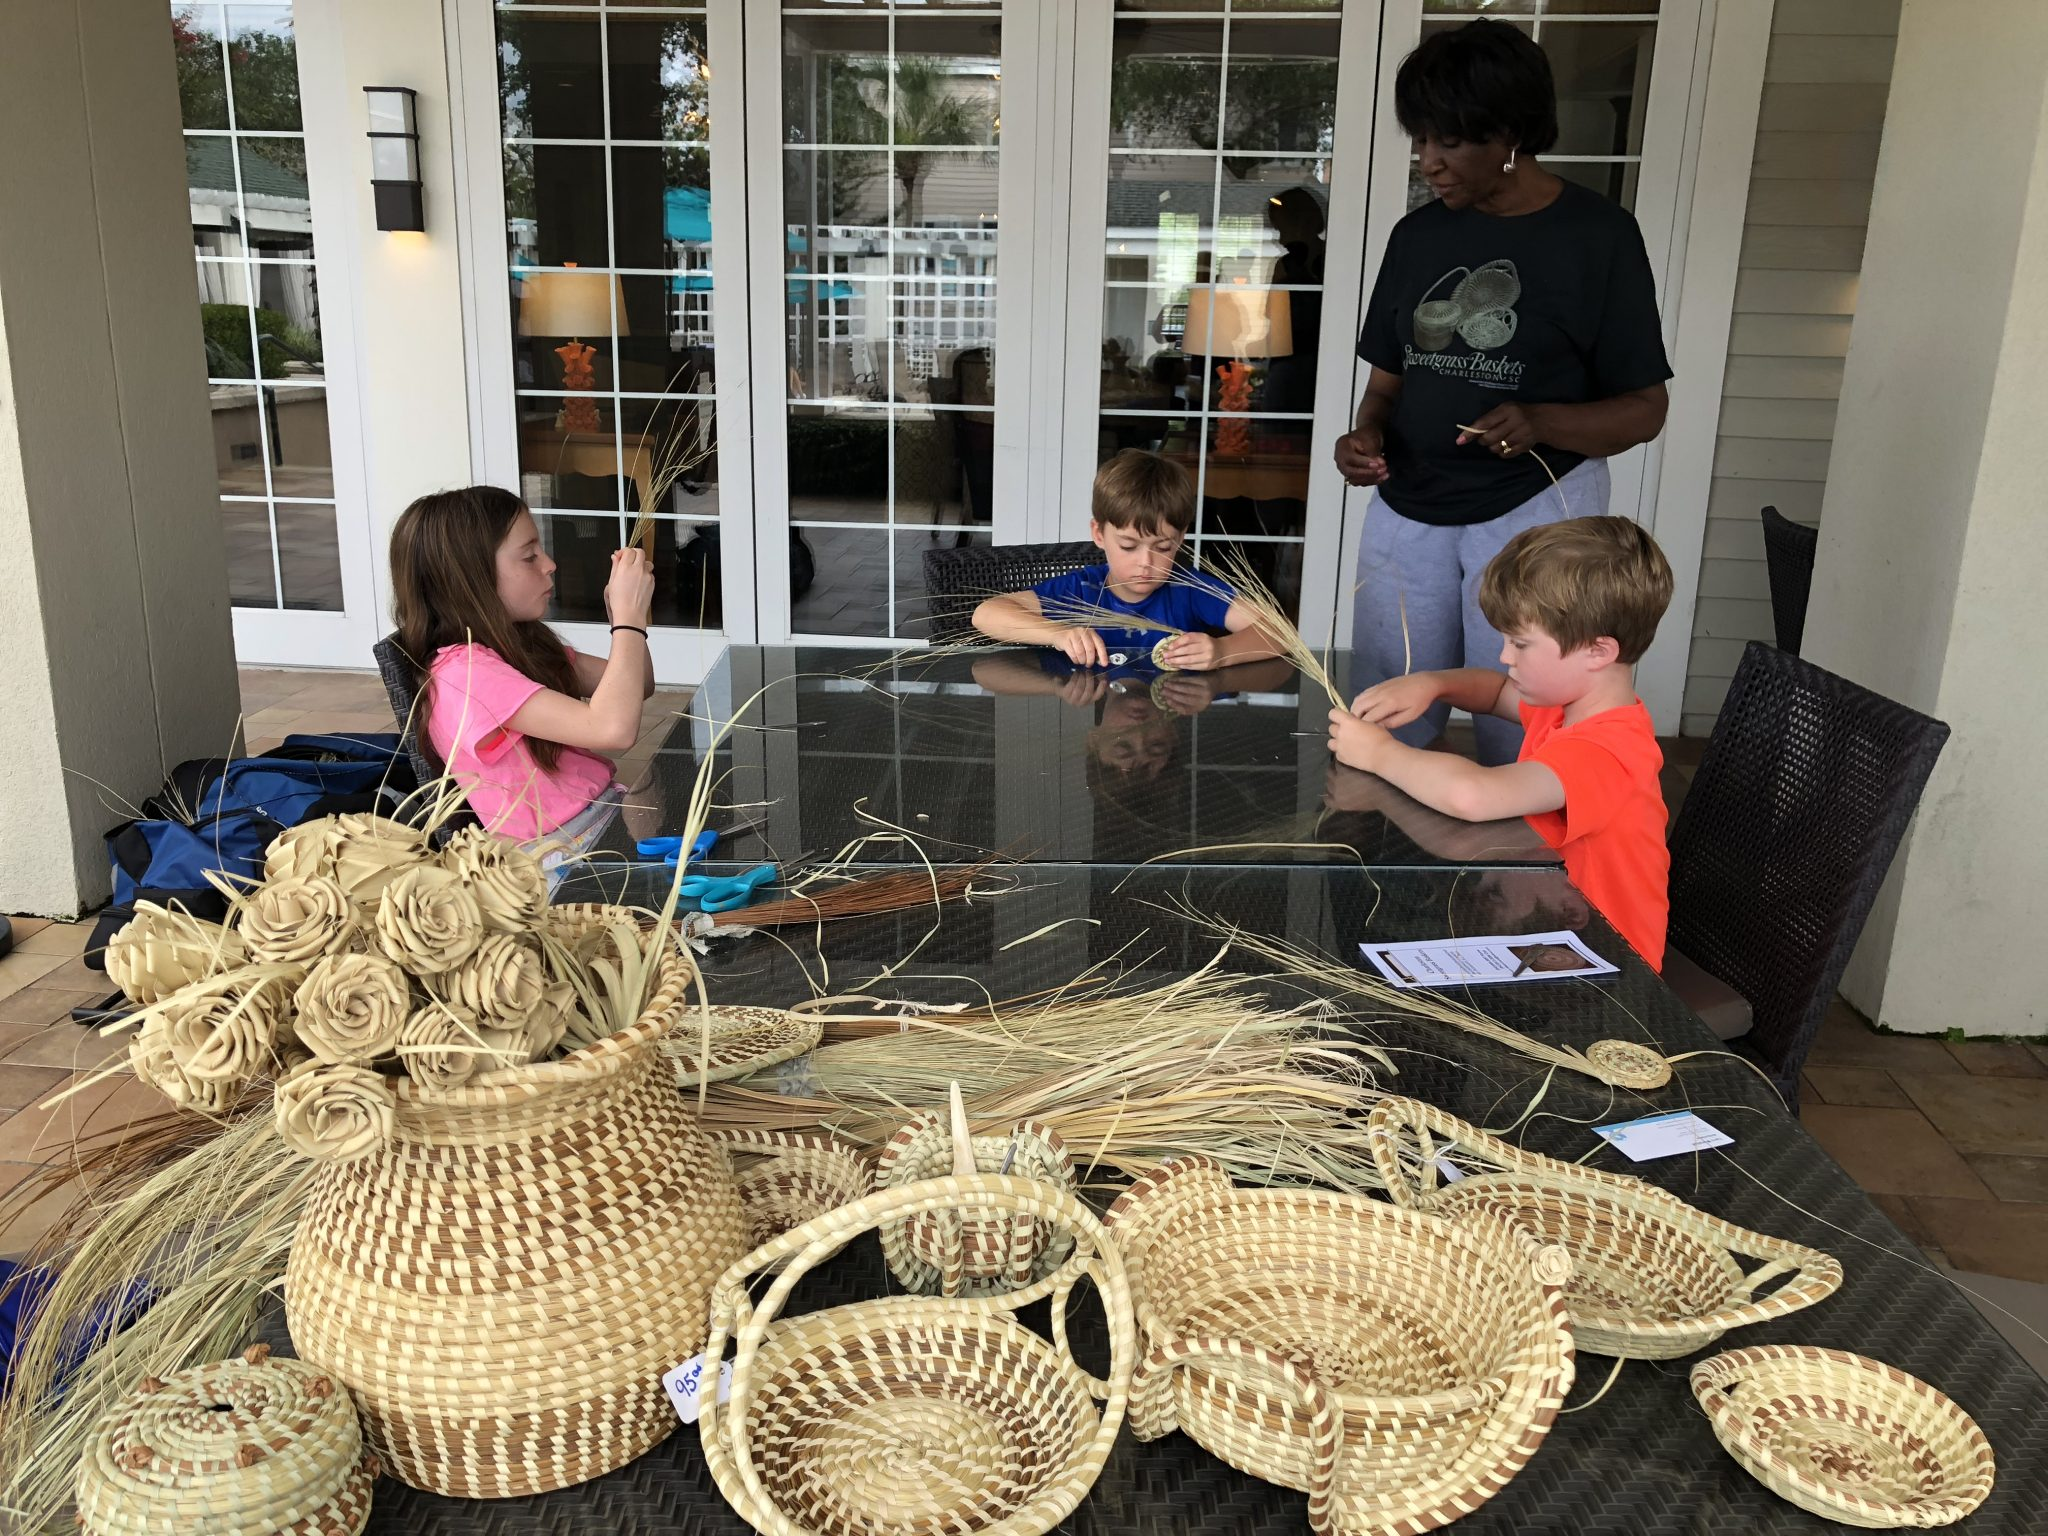 Sweetgrass basket weaving at Wild Dunes Resort, one of South Carolina's Best Family Resorts on TravelingMom.